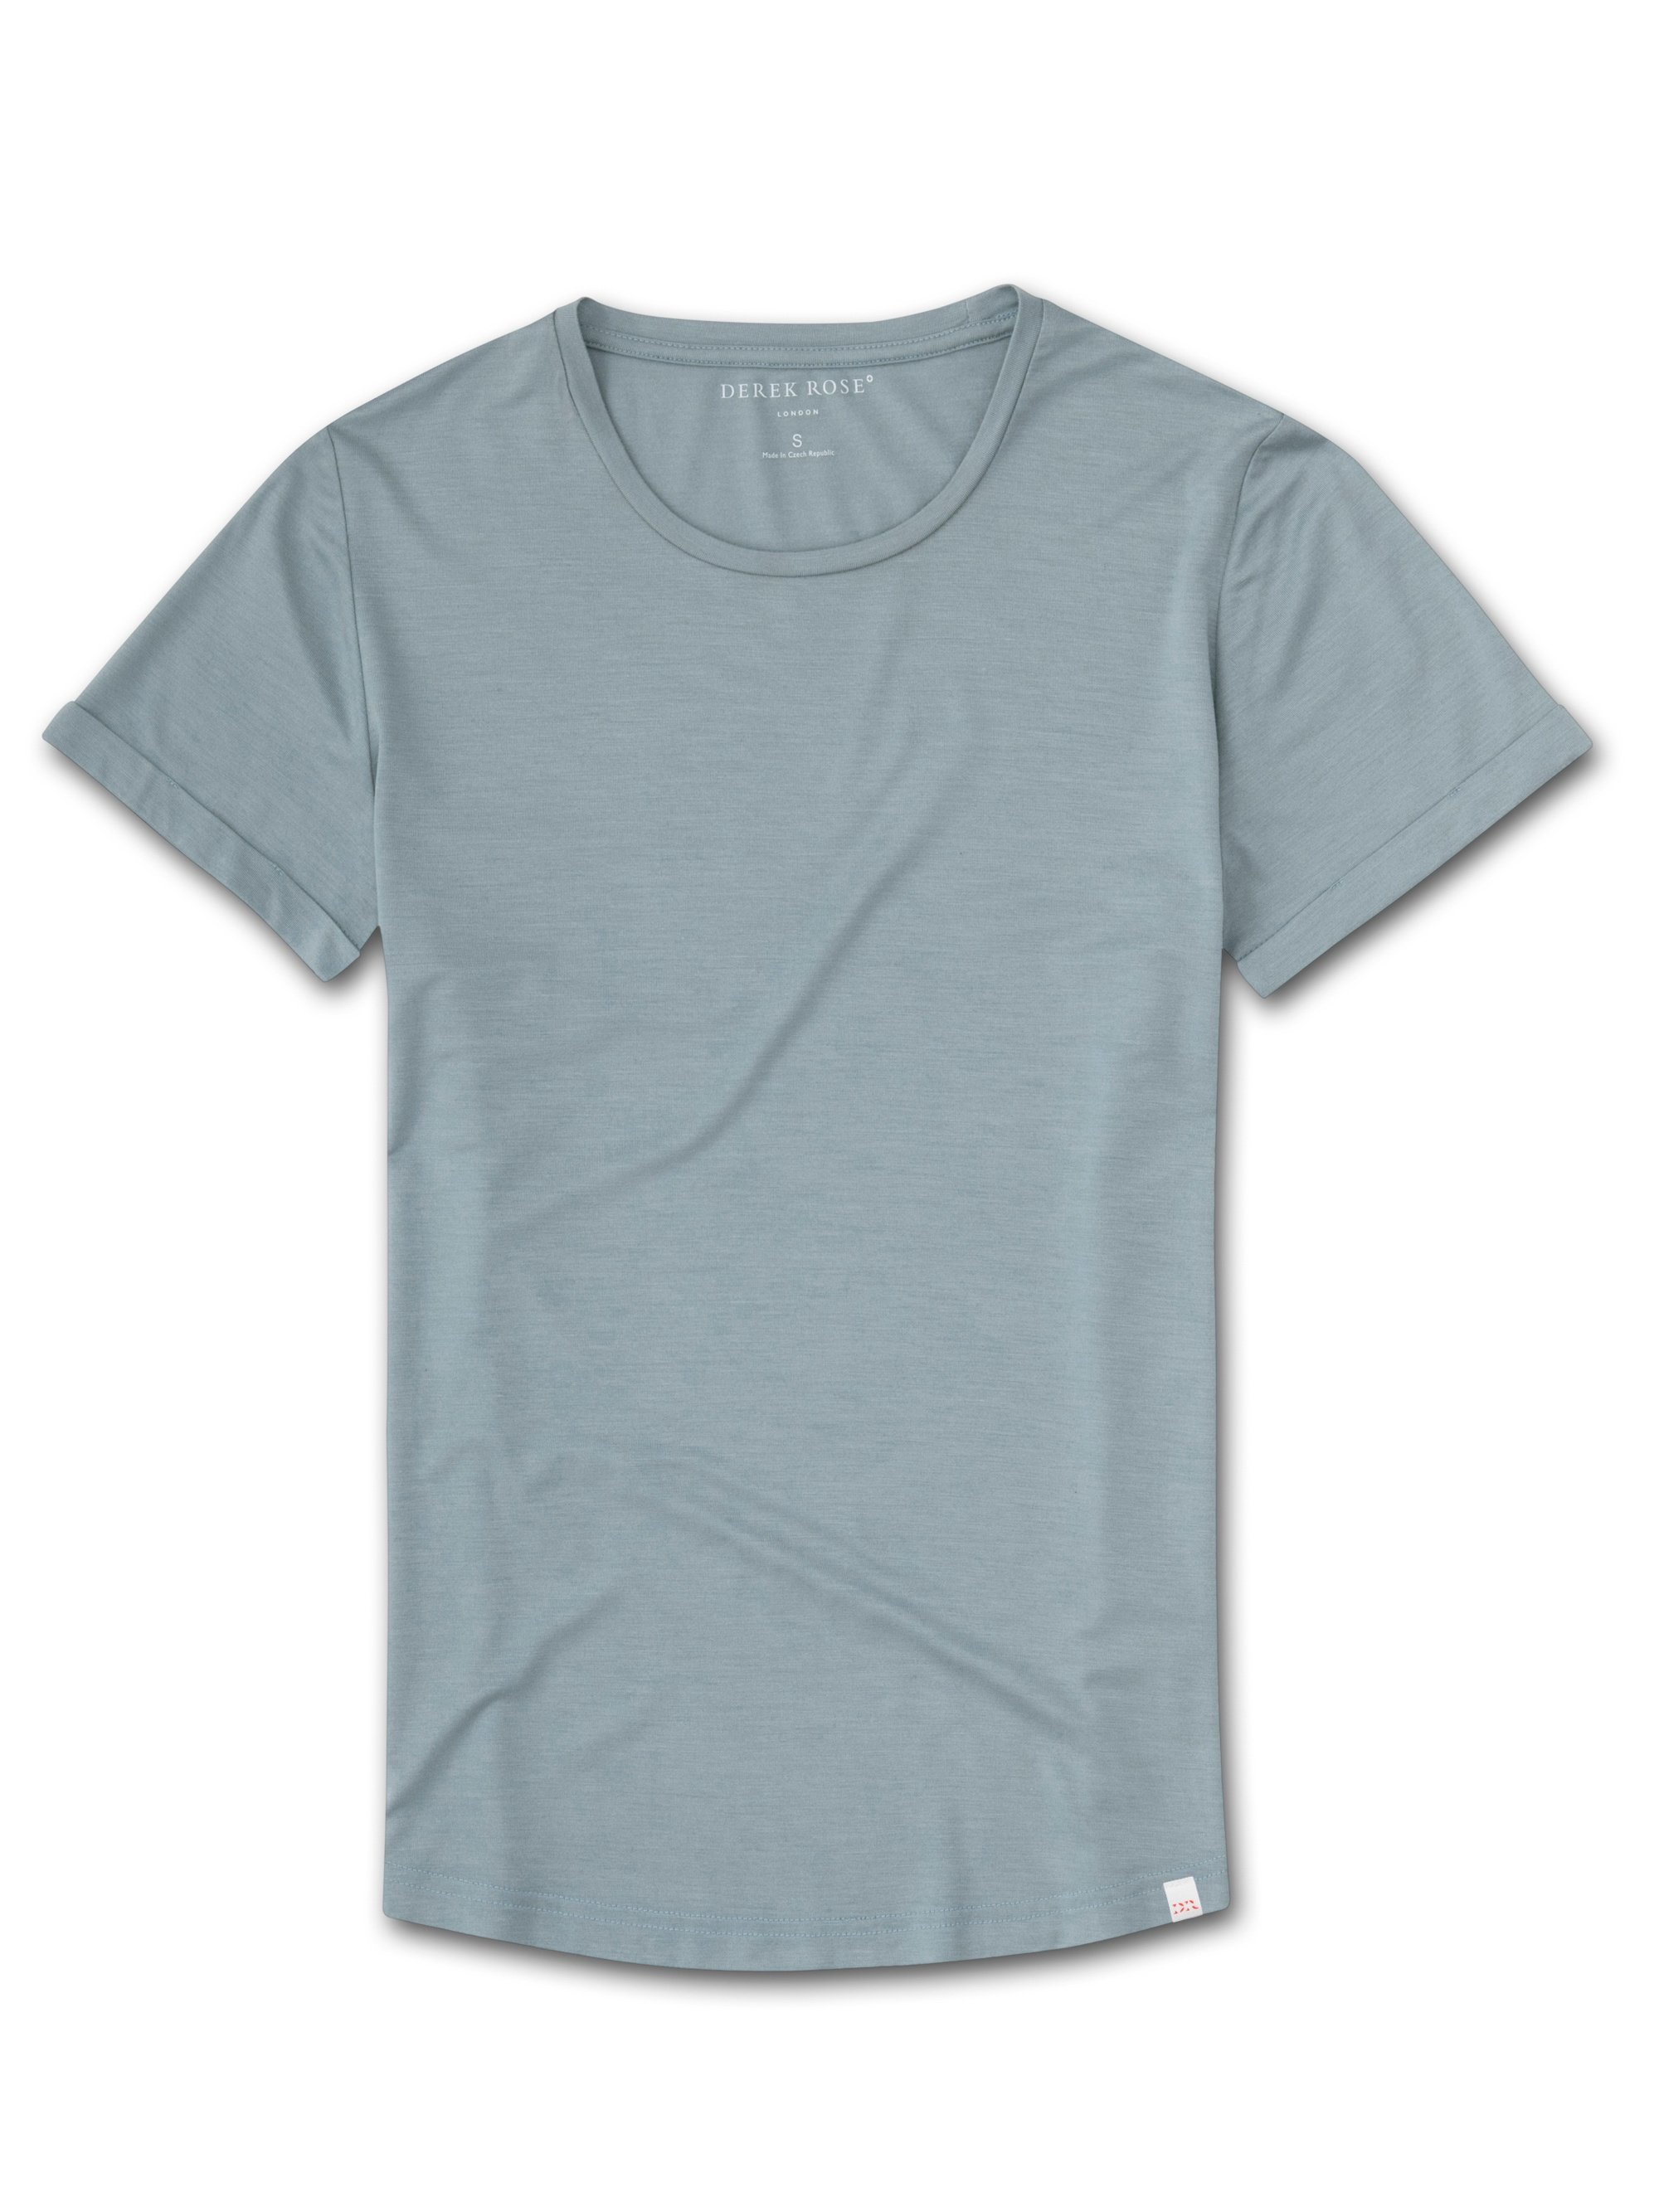 Women's Leisure T-Shirt Lara Micro Modal Stretch Blue